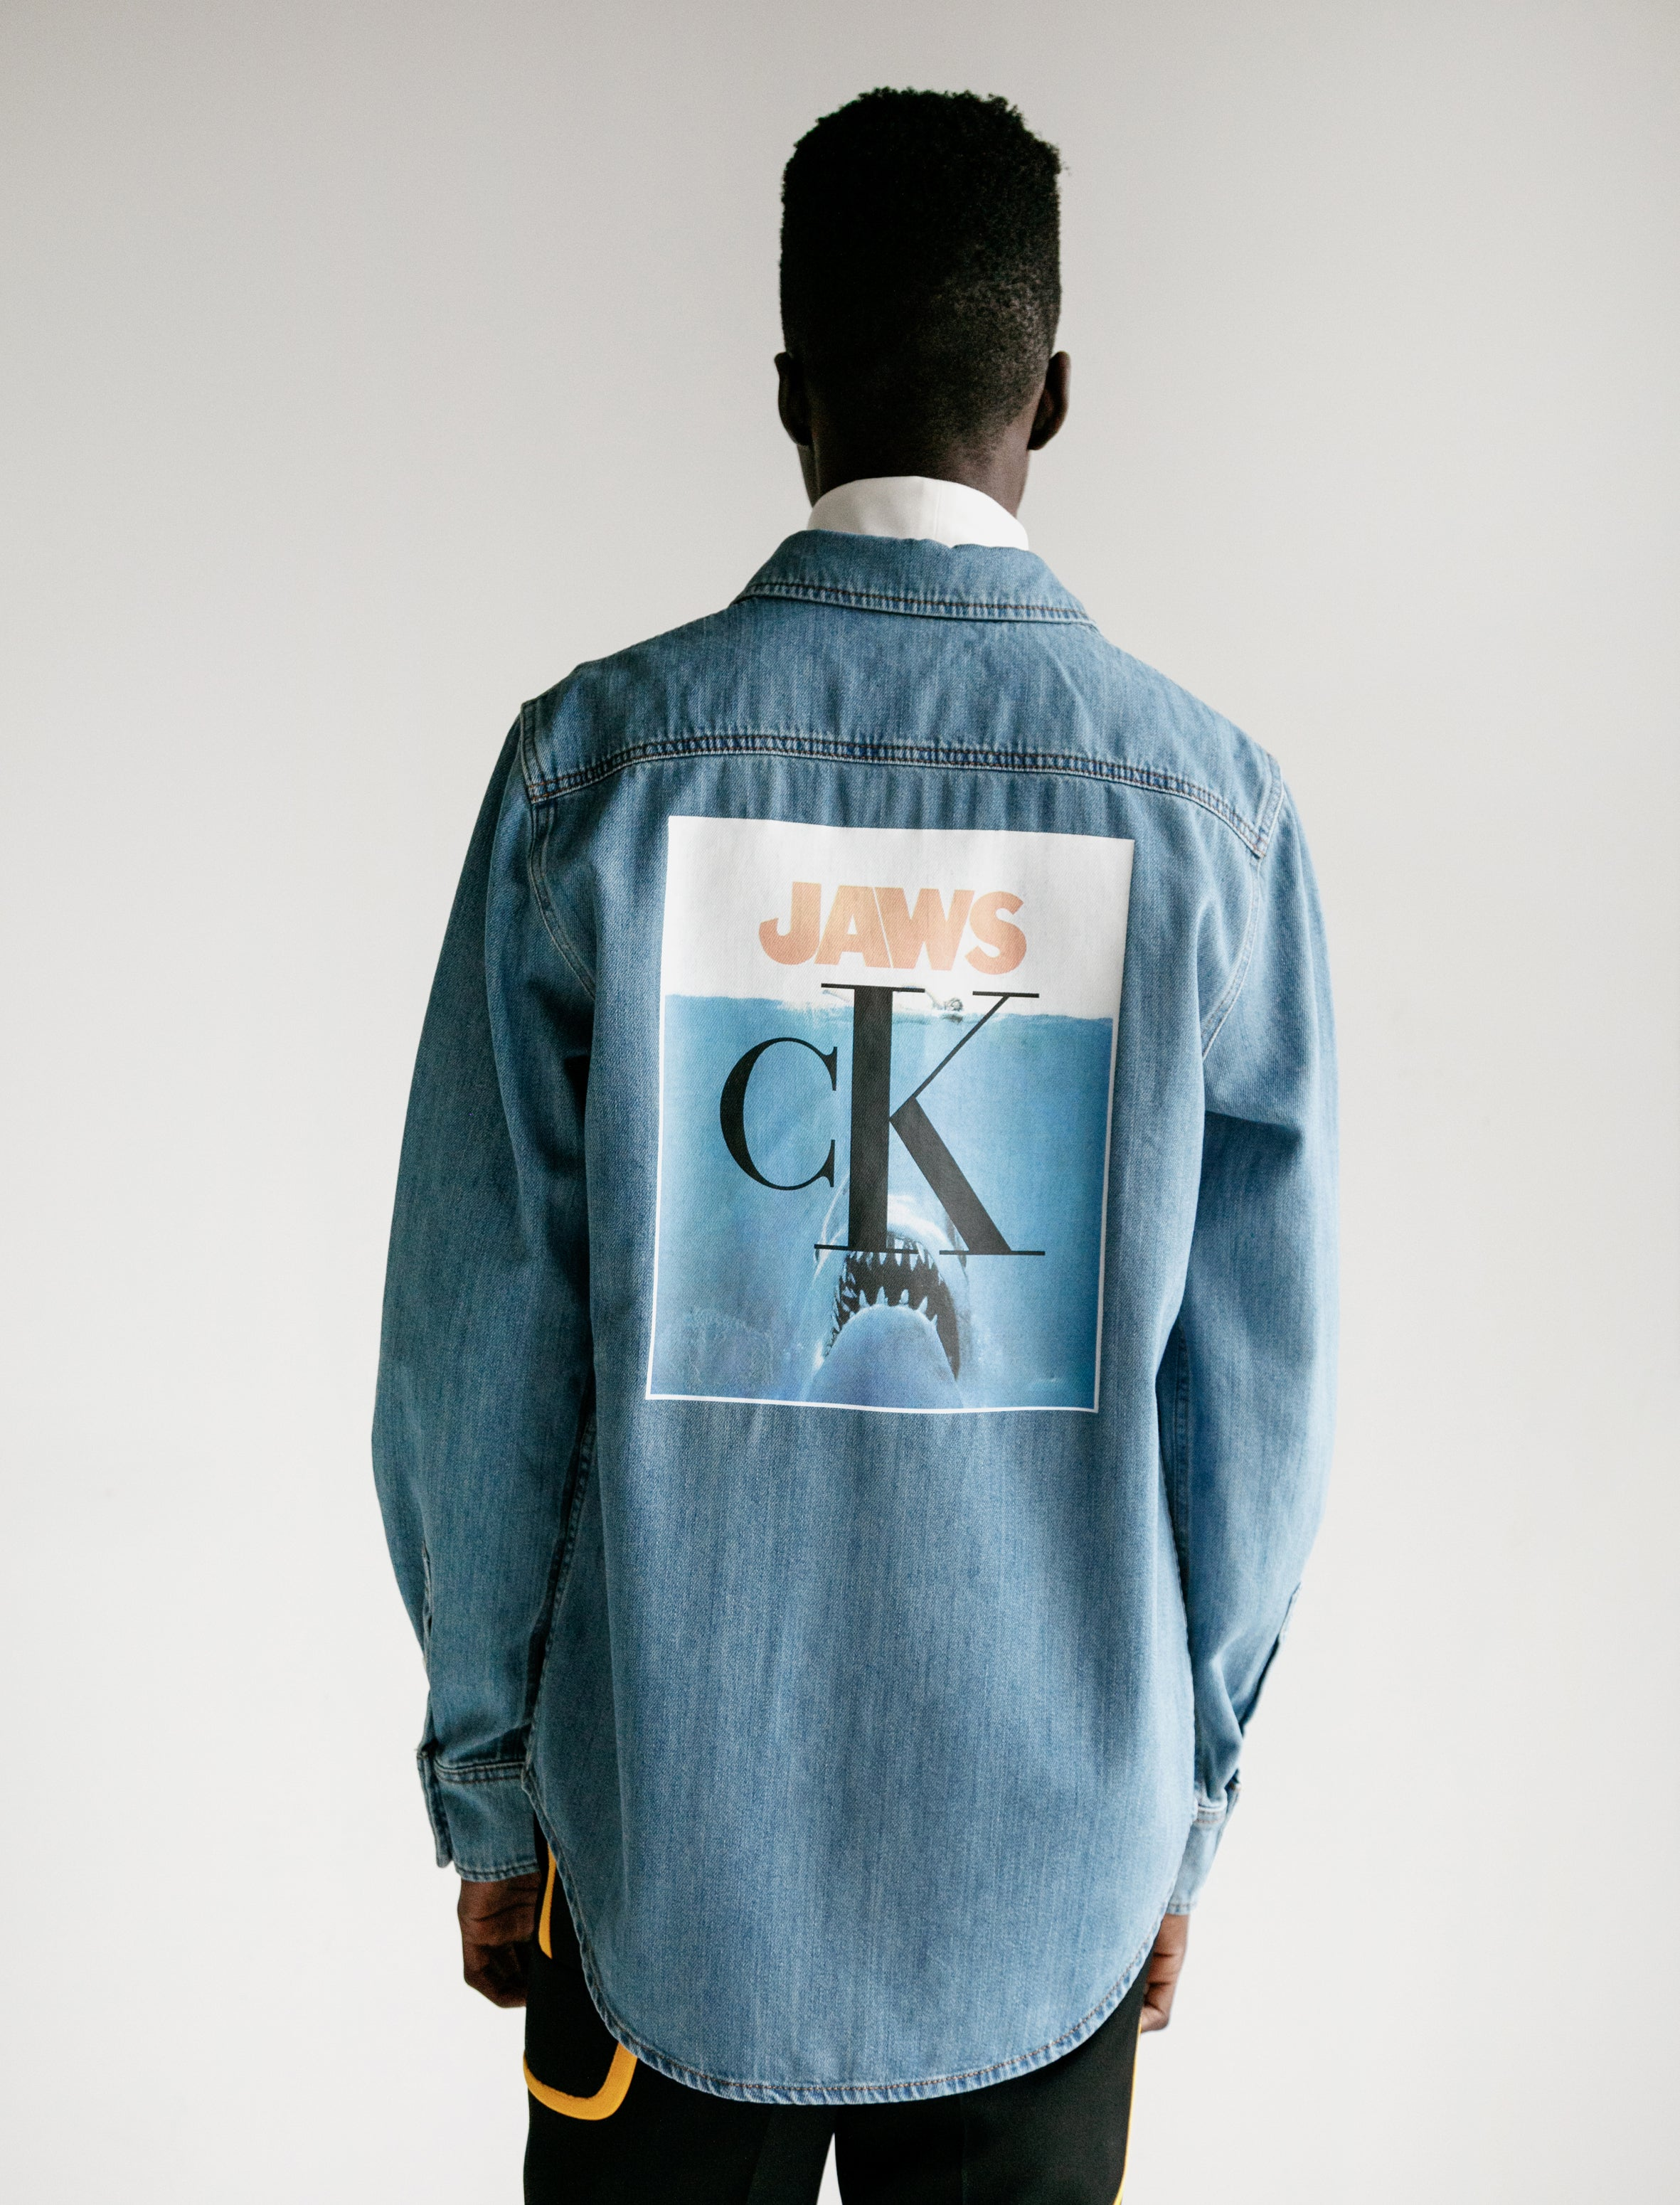 Calvin Klein 205 W39 NYC Denim Jaws Shirt